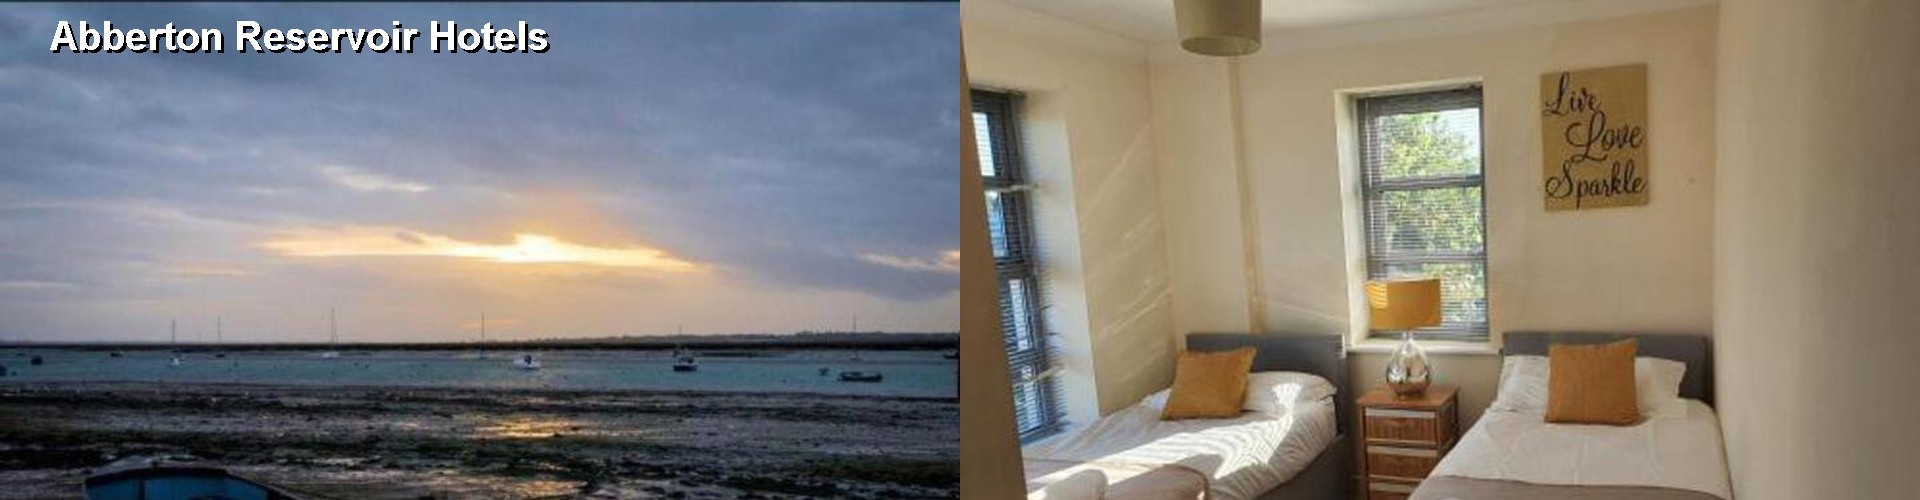 5 Best Hotels near Abberton Reservoir